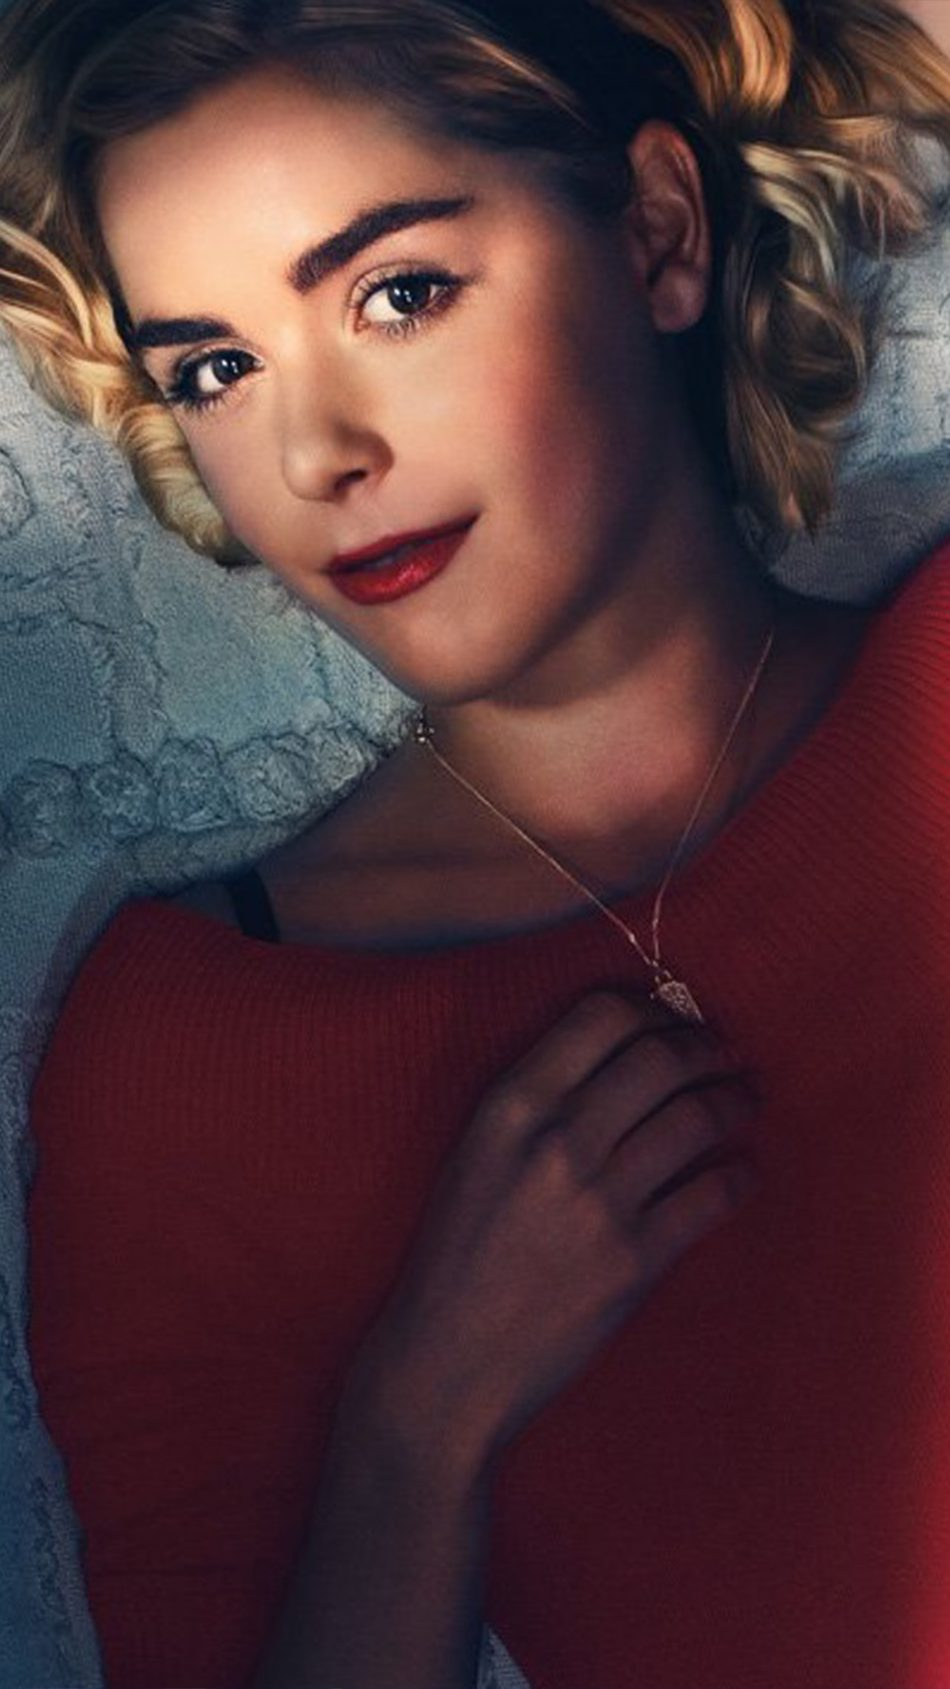 Kiernan Shipka In The Chilling Adventures of Sabrina Series 4K Ultra HD Mobile Wallpaper